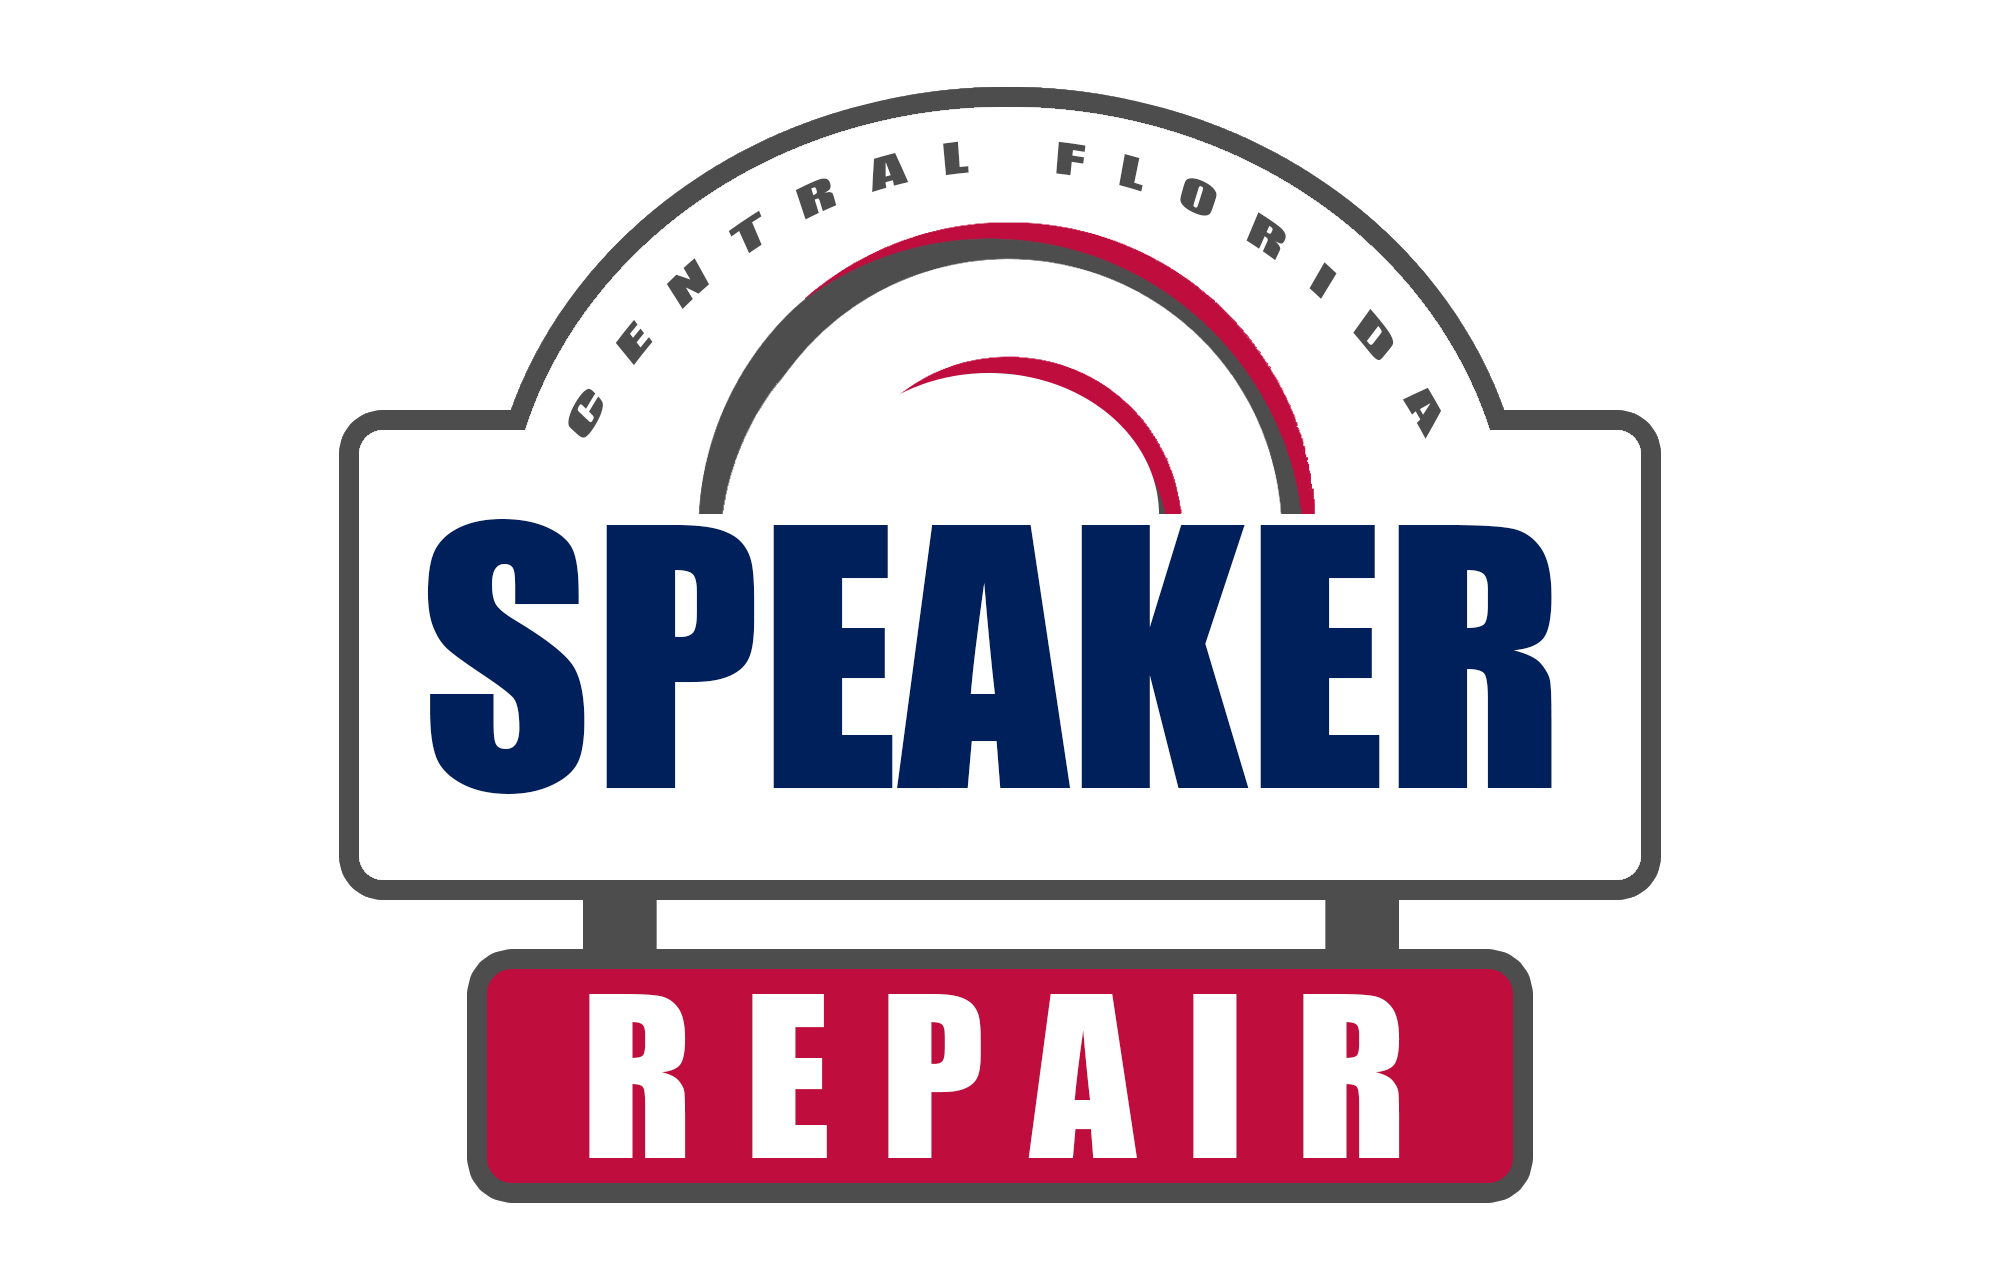 Central Florida Speaker Repair Logo